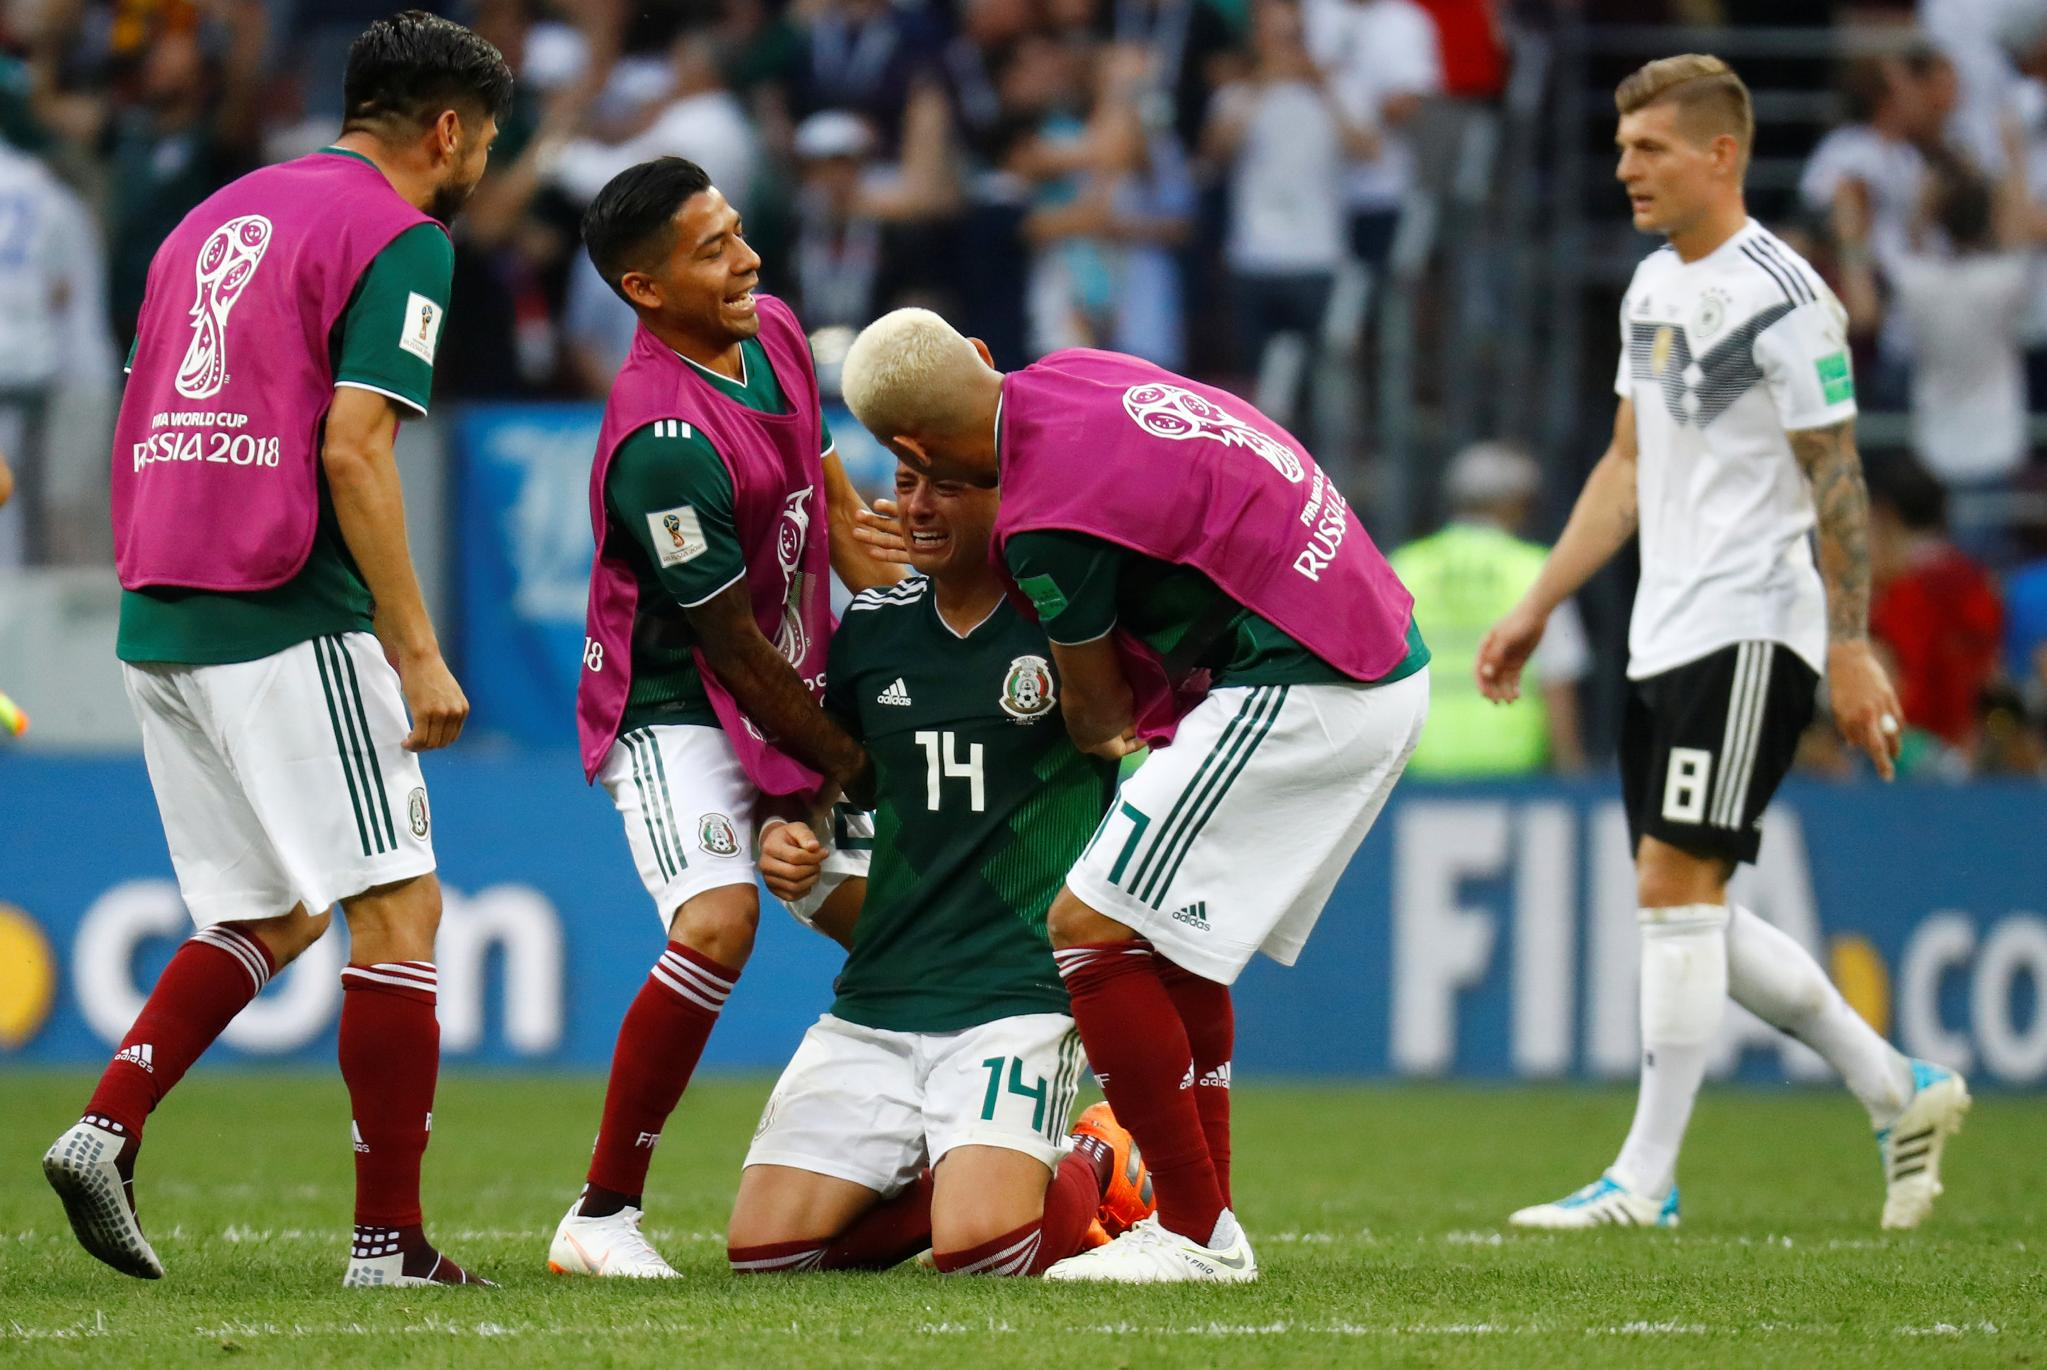 What it means to beat the world champions  #MondayMotivation #WorldCup #MEX https://t.co/WMWmUh83GK